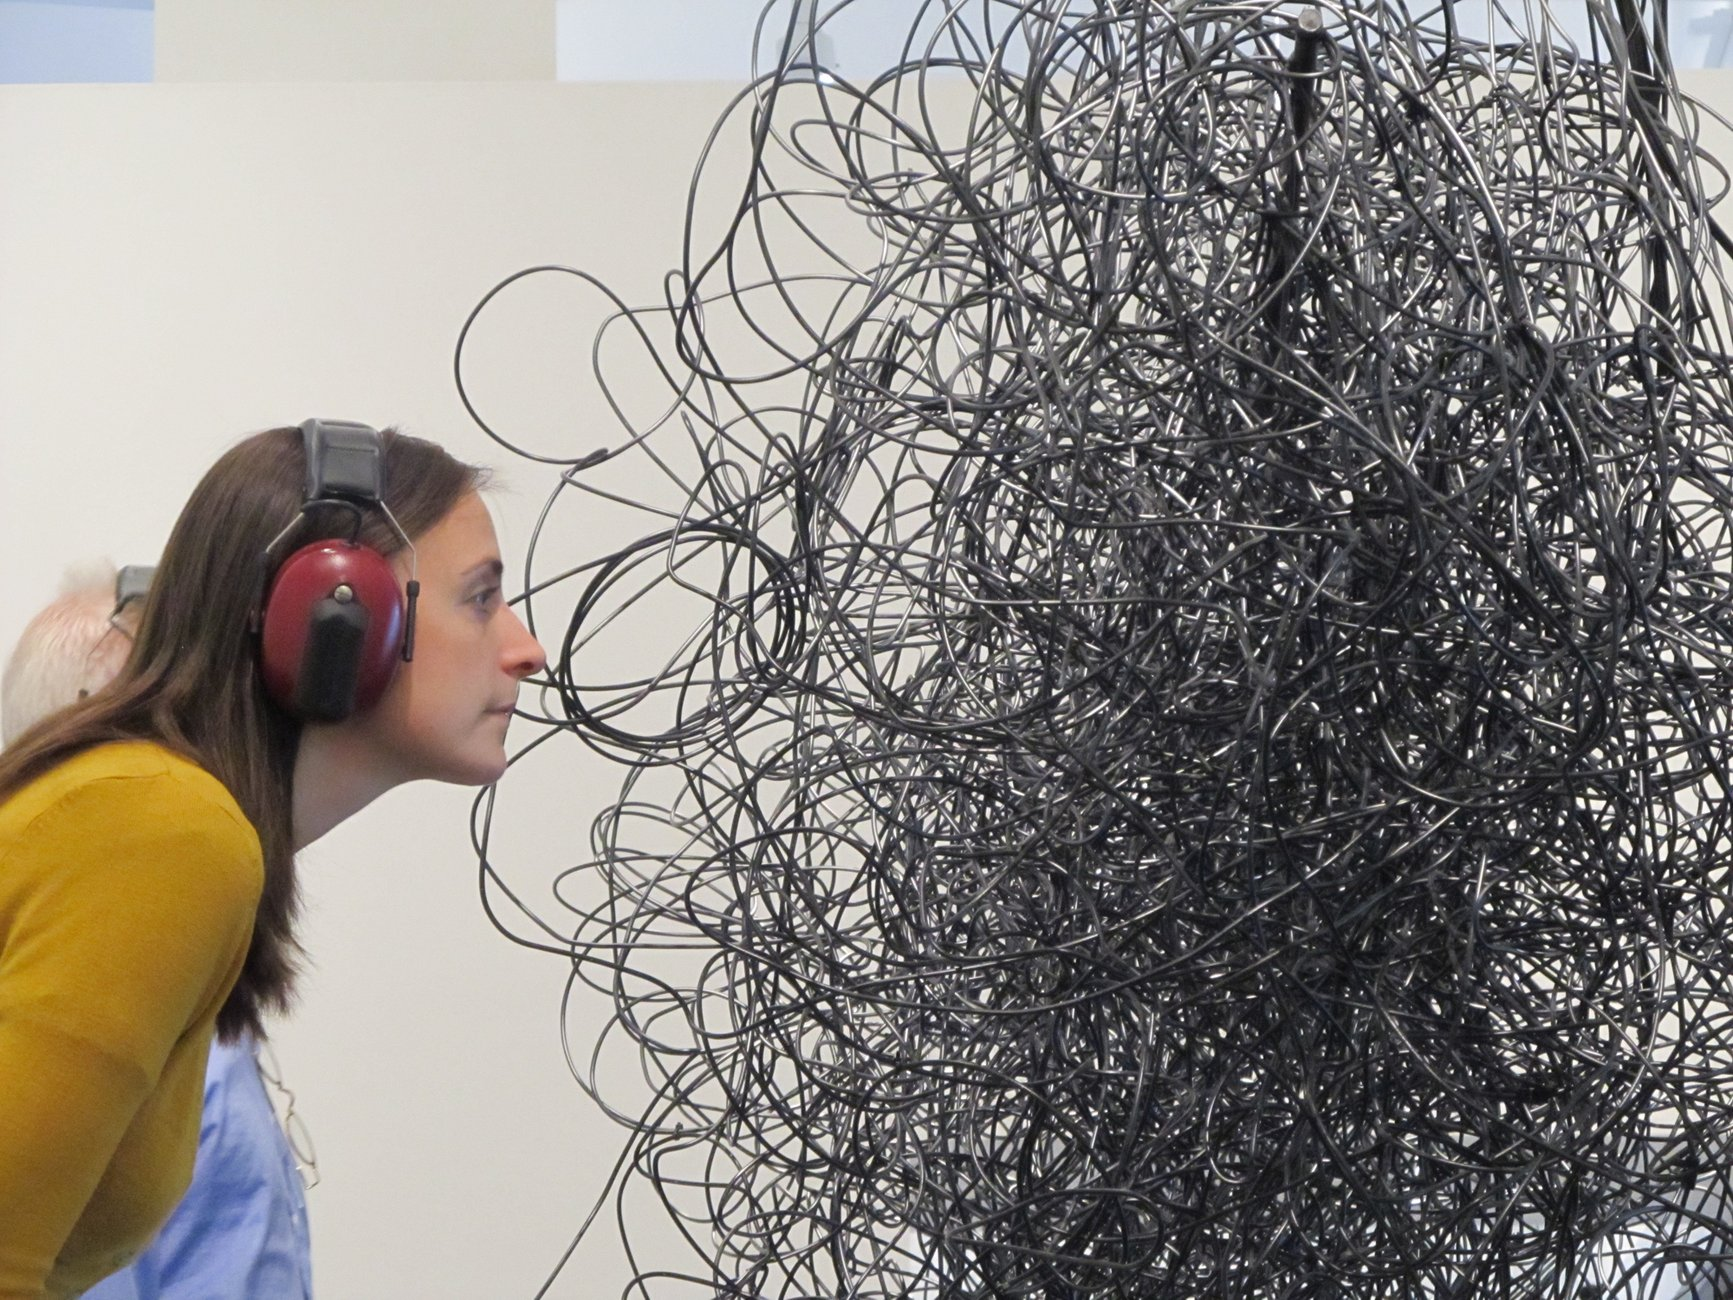 A Caucasian woman wearing read headphones leans into a sculpture in the form of tangled wires